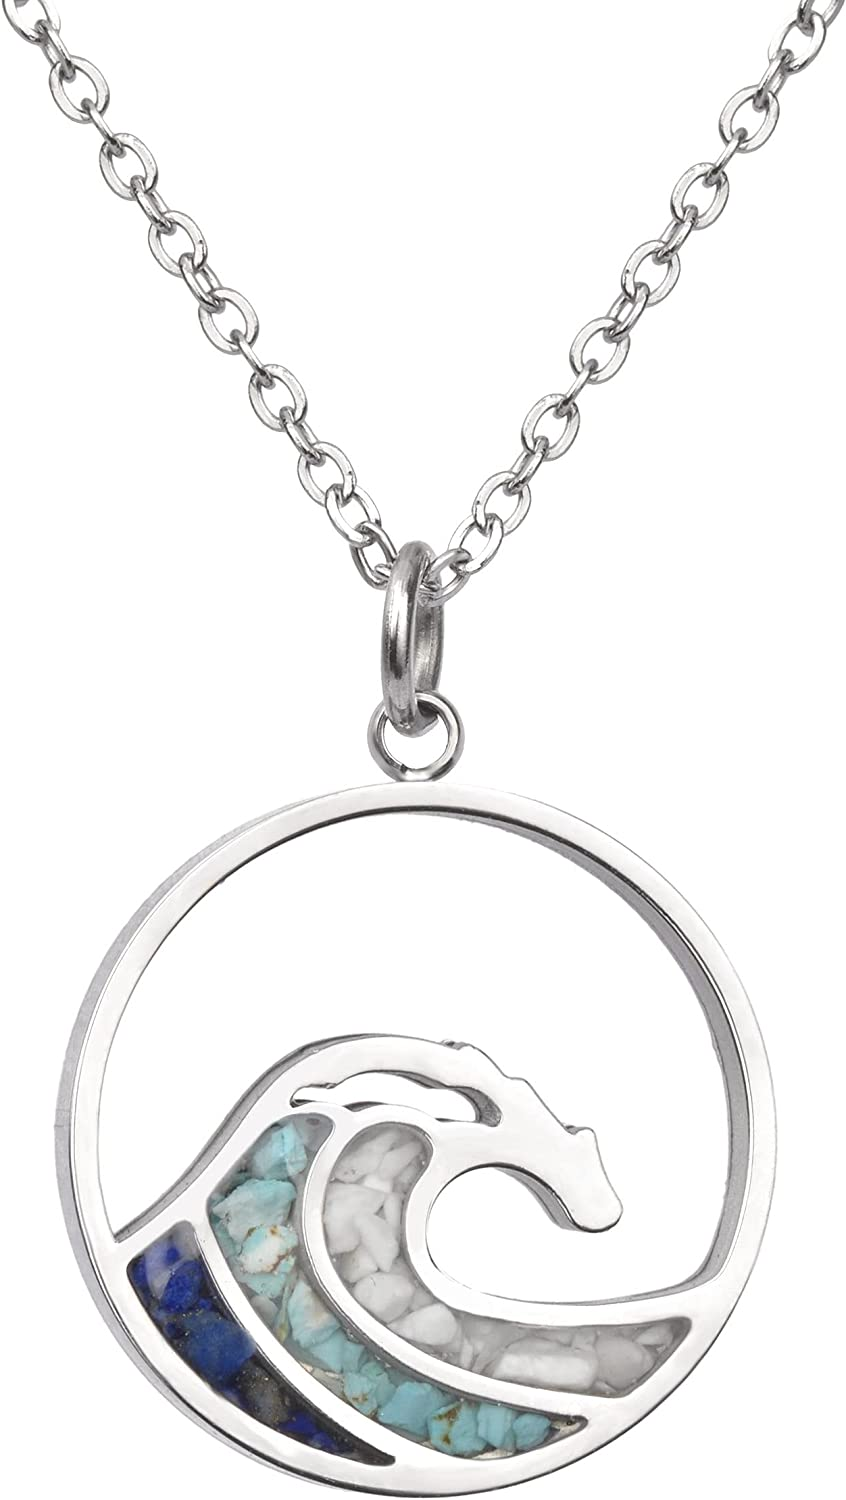 Lauren-Spencer Turquoise Wave Necklace for Women Tumbled Gemstone Chips Pendant Necklace Dainty Ocean Wave Necklaces for Women Girls Surfer Beach Jewelry Gifts